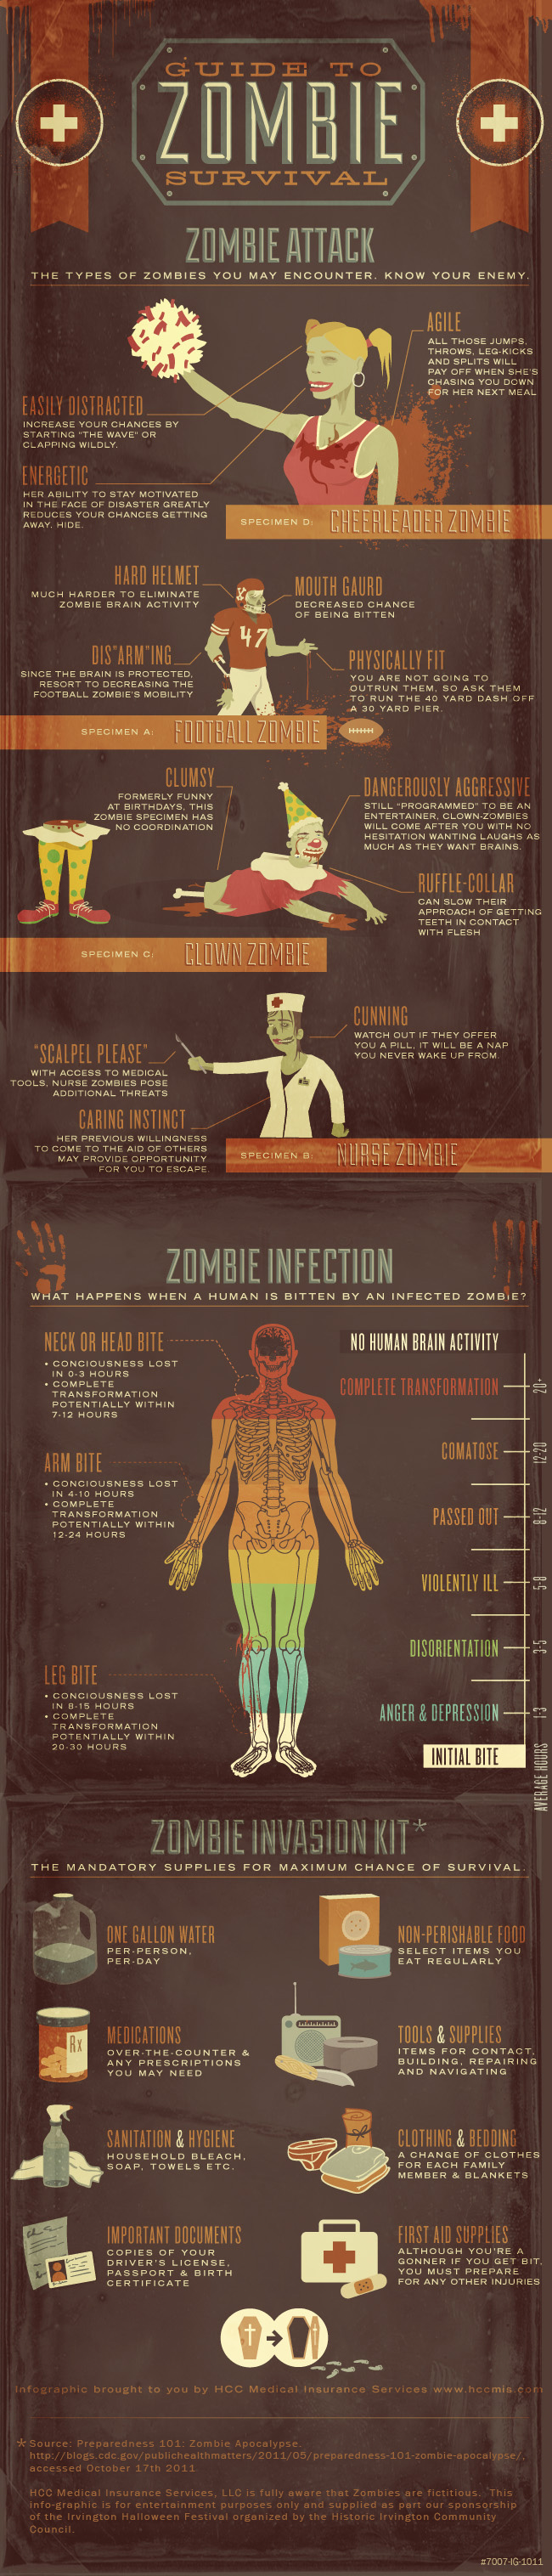 Zombie-Survival-Guide-infographic